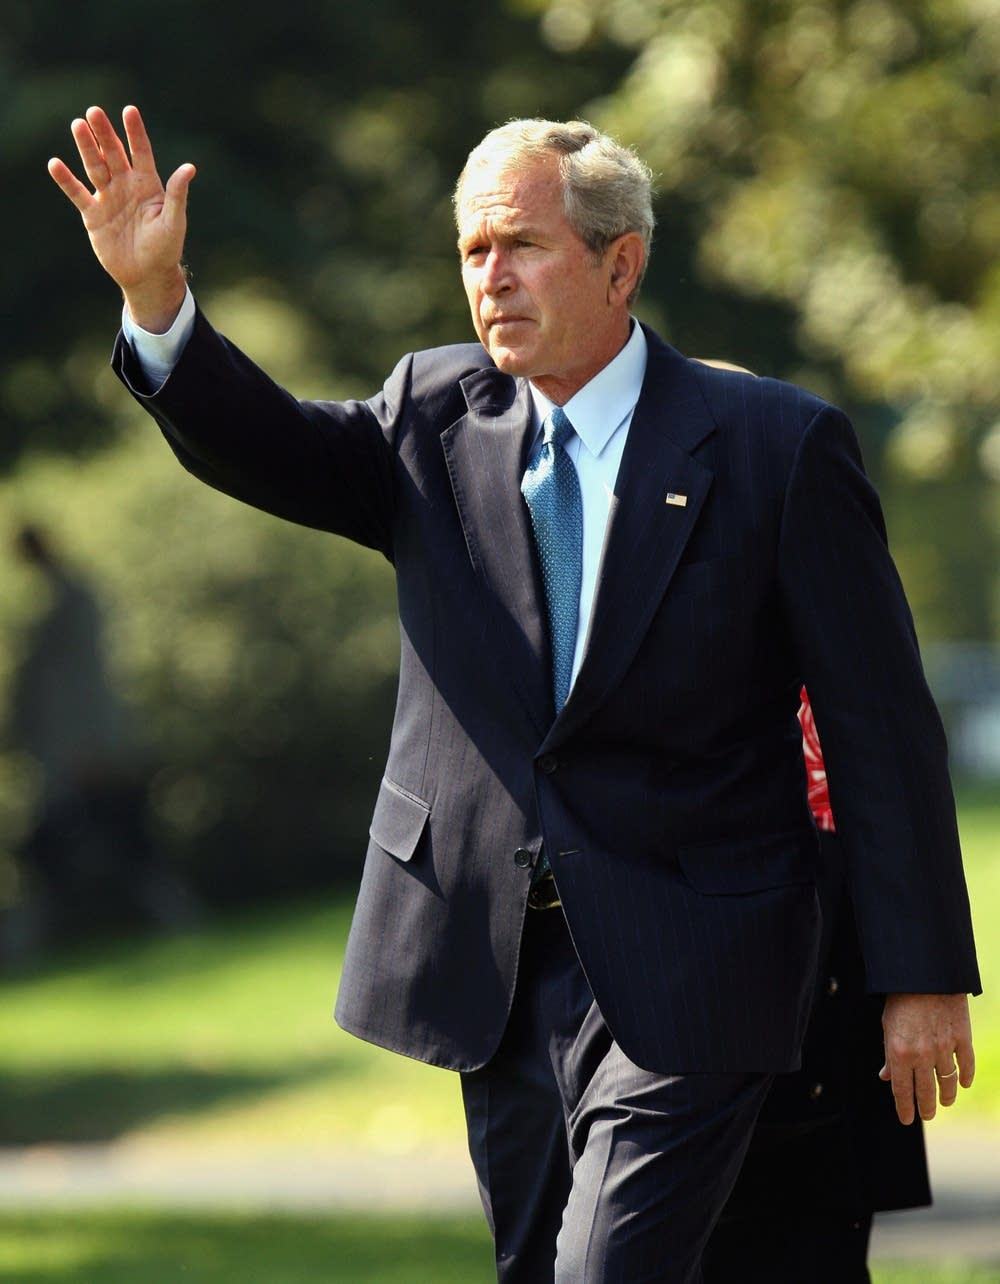 President Bush departs the White House